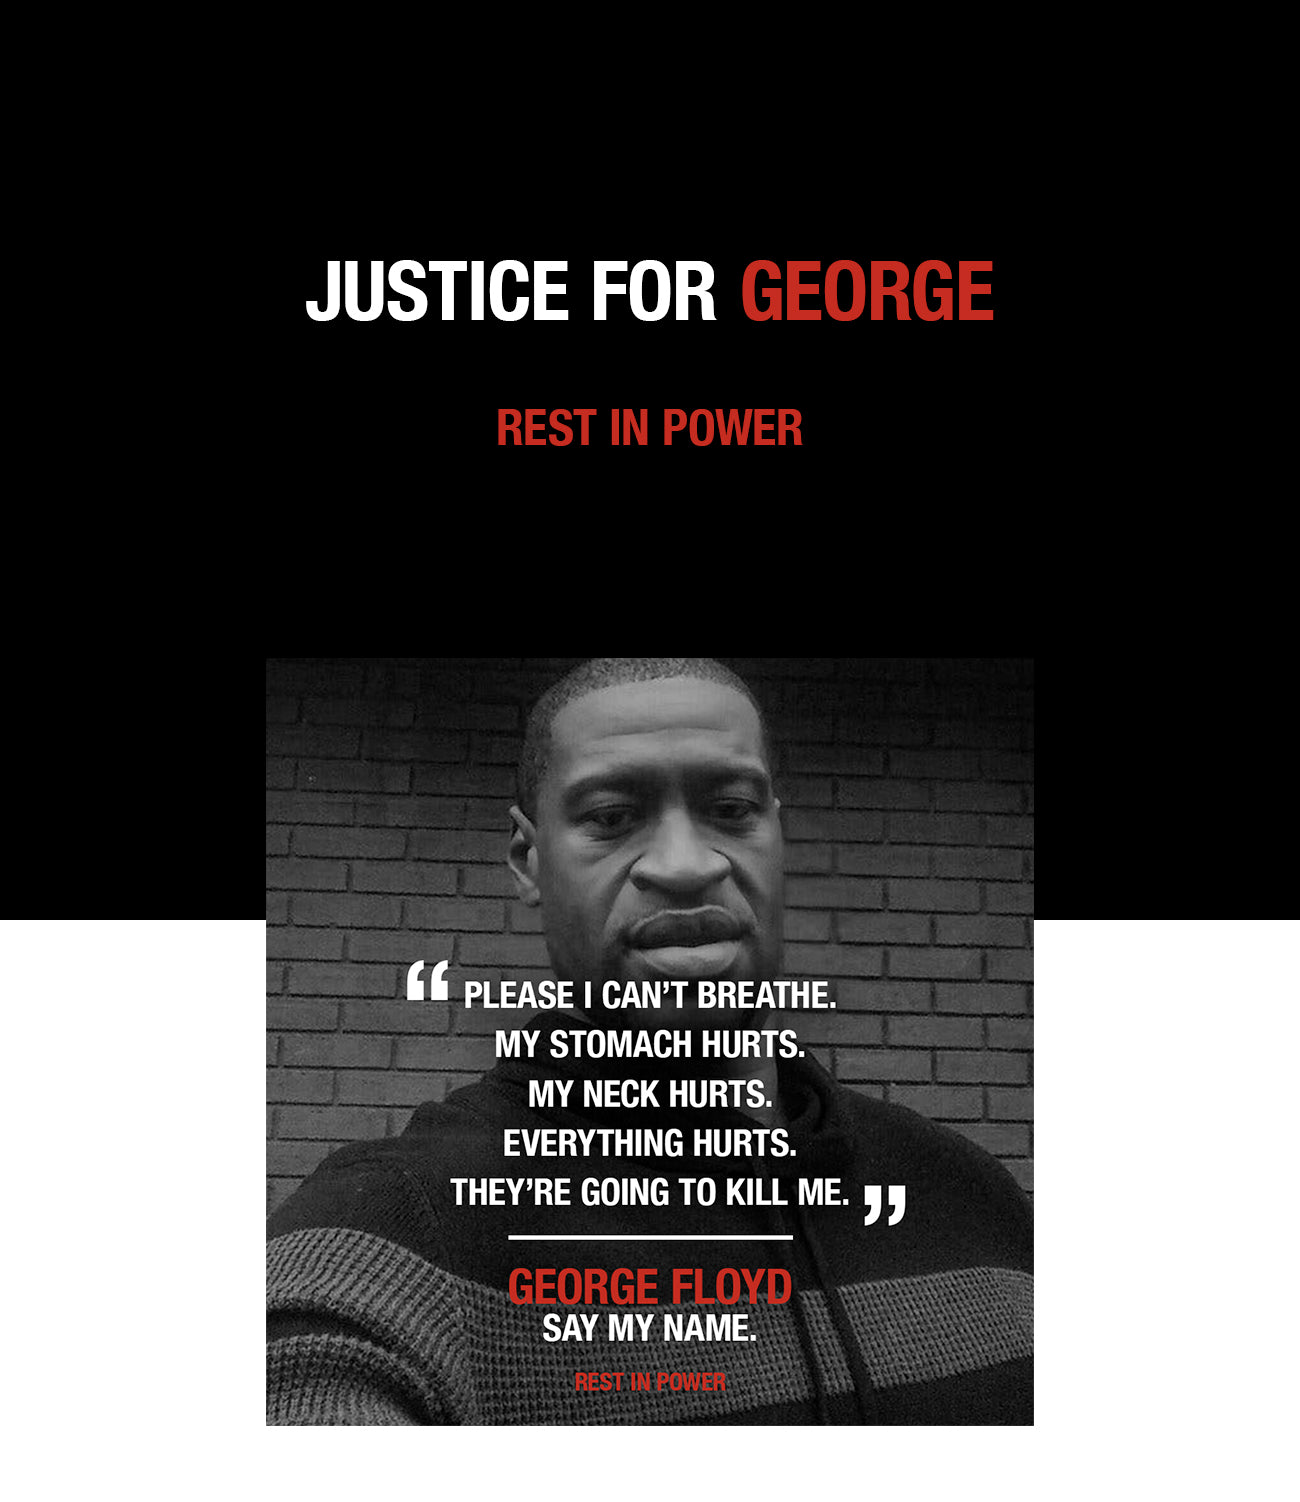 Justice for George